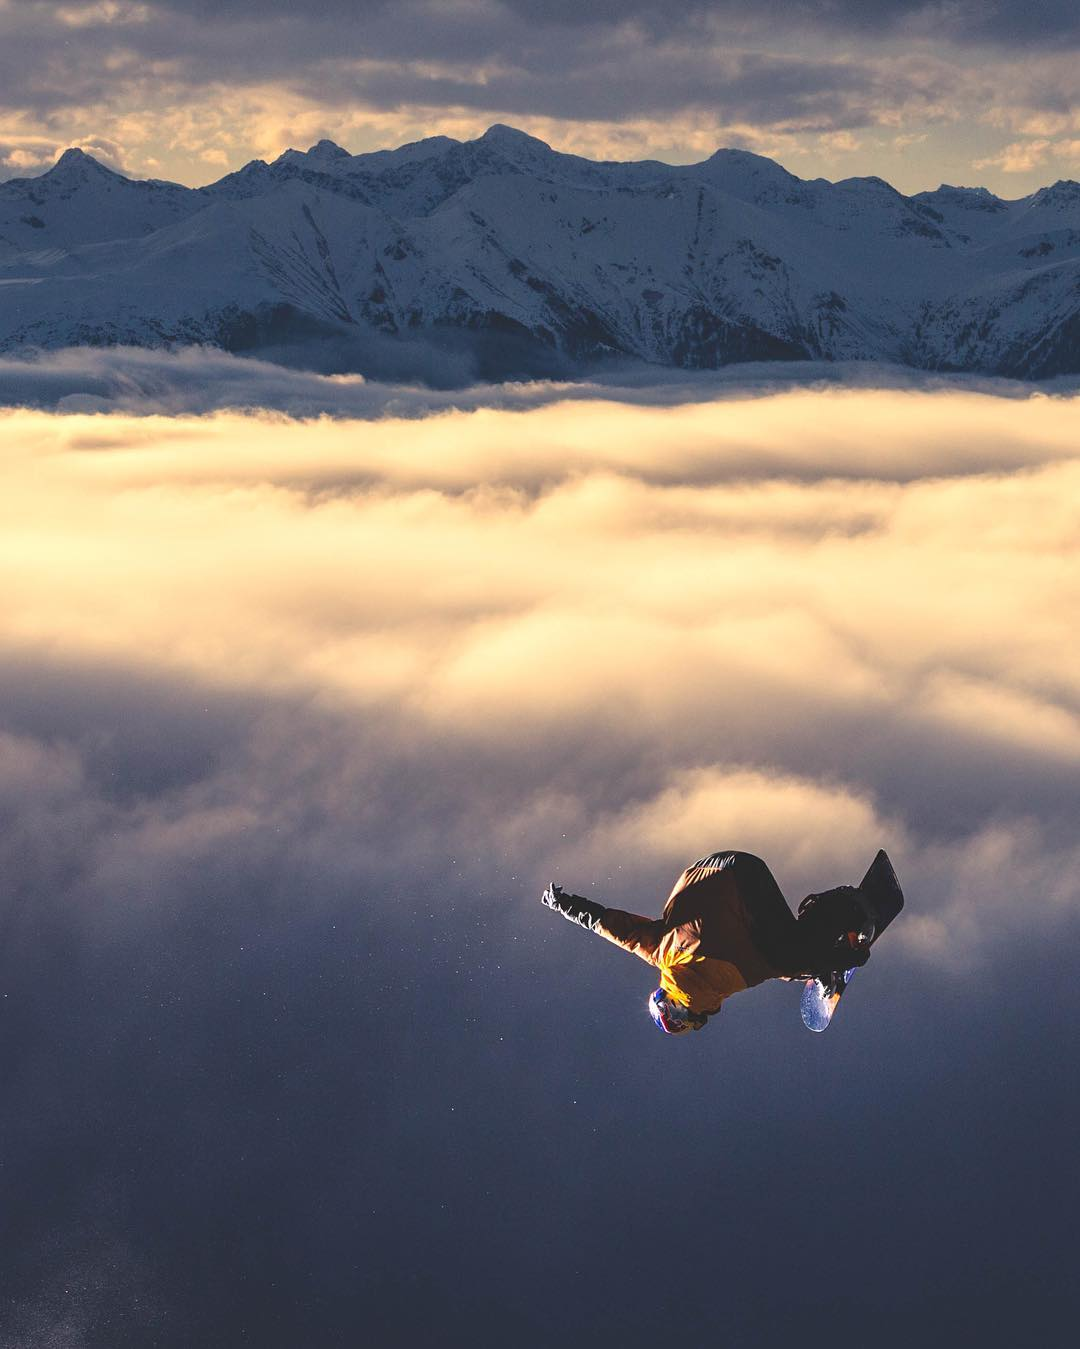 Snowboarding? More like cloudboarding.